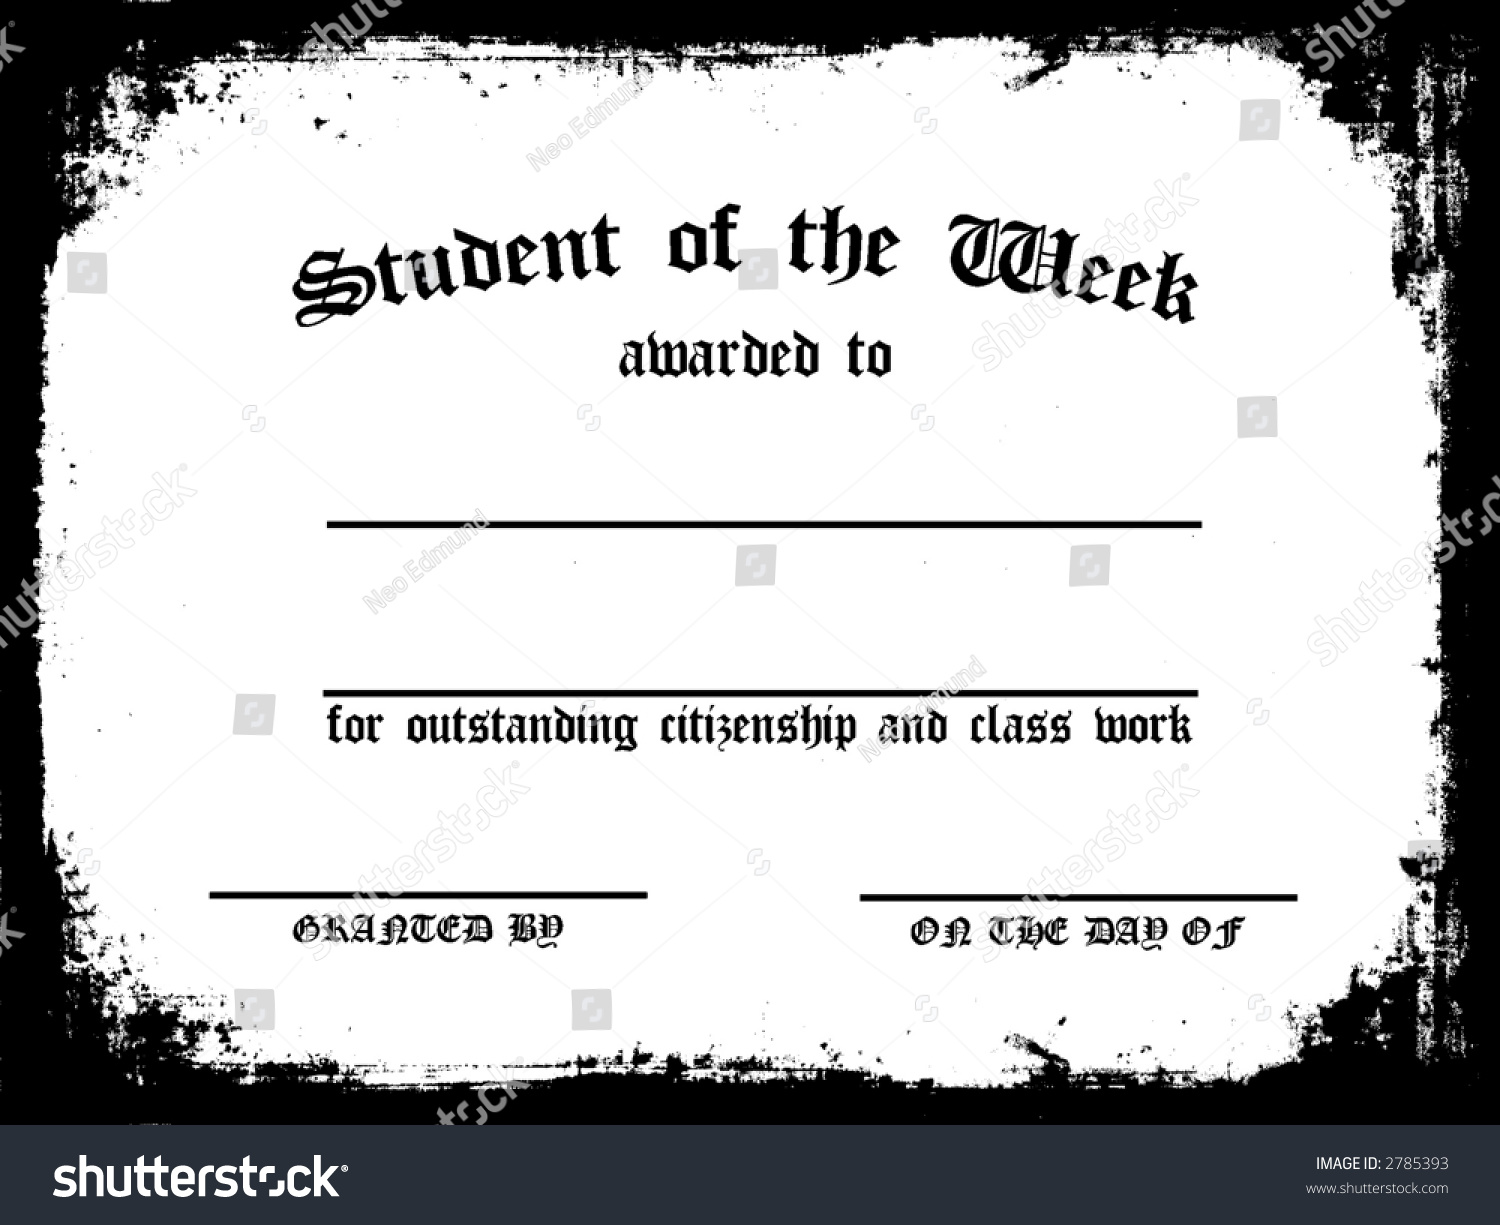 Customizable student on week certificate stock illustration customizable student on the week certificate xflitez Choice Image